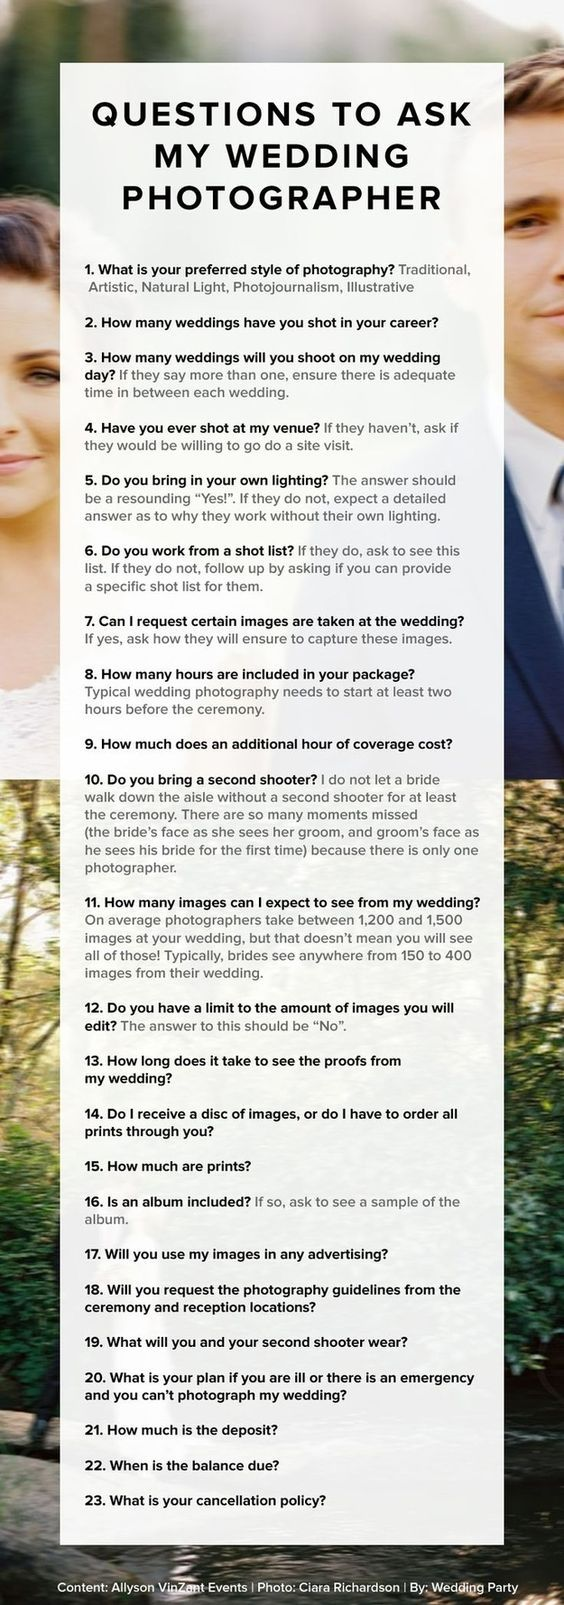 wedding planning tips - questions to ask my wedding photographer: